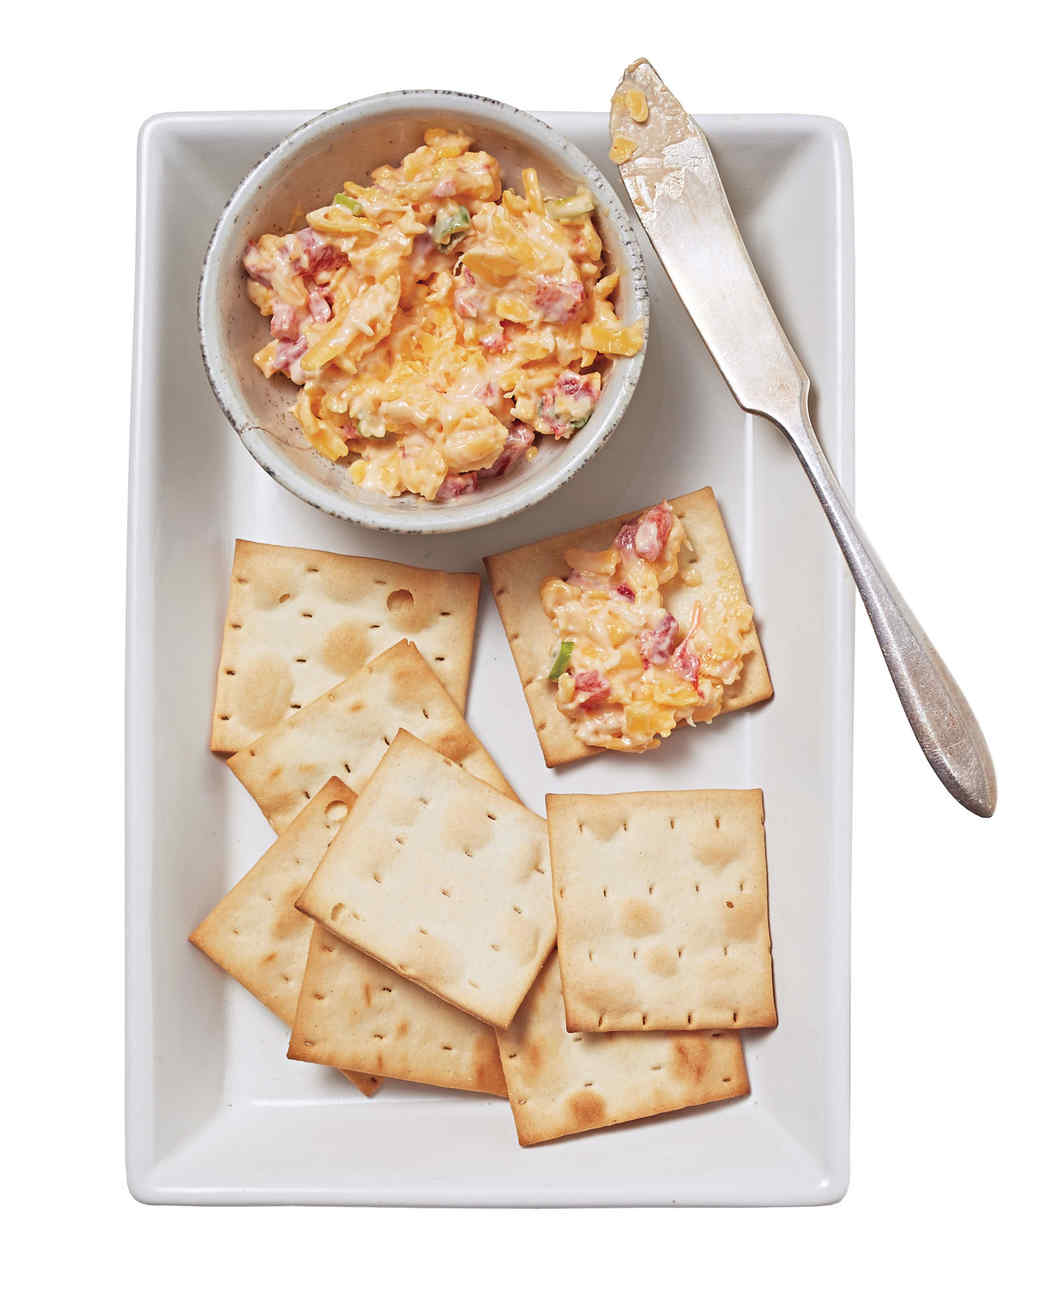 pimento-cheese-with-crackers-086-d112769_l.jpg